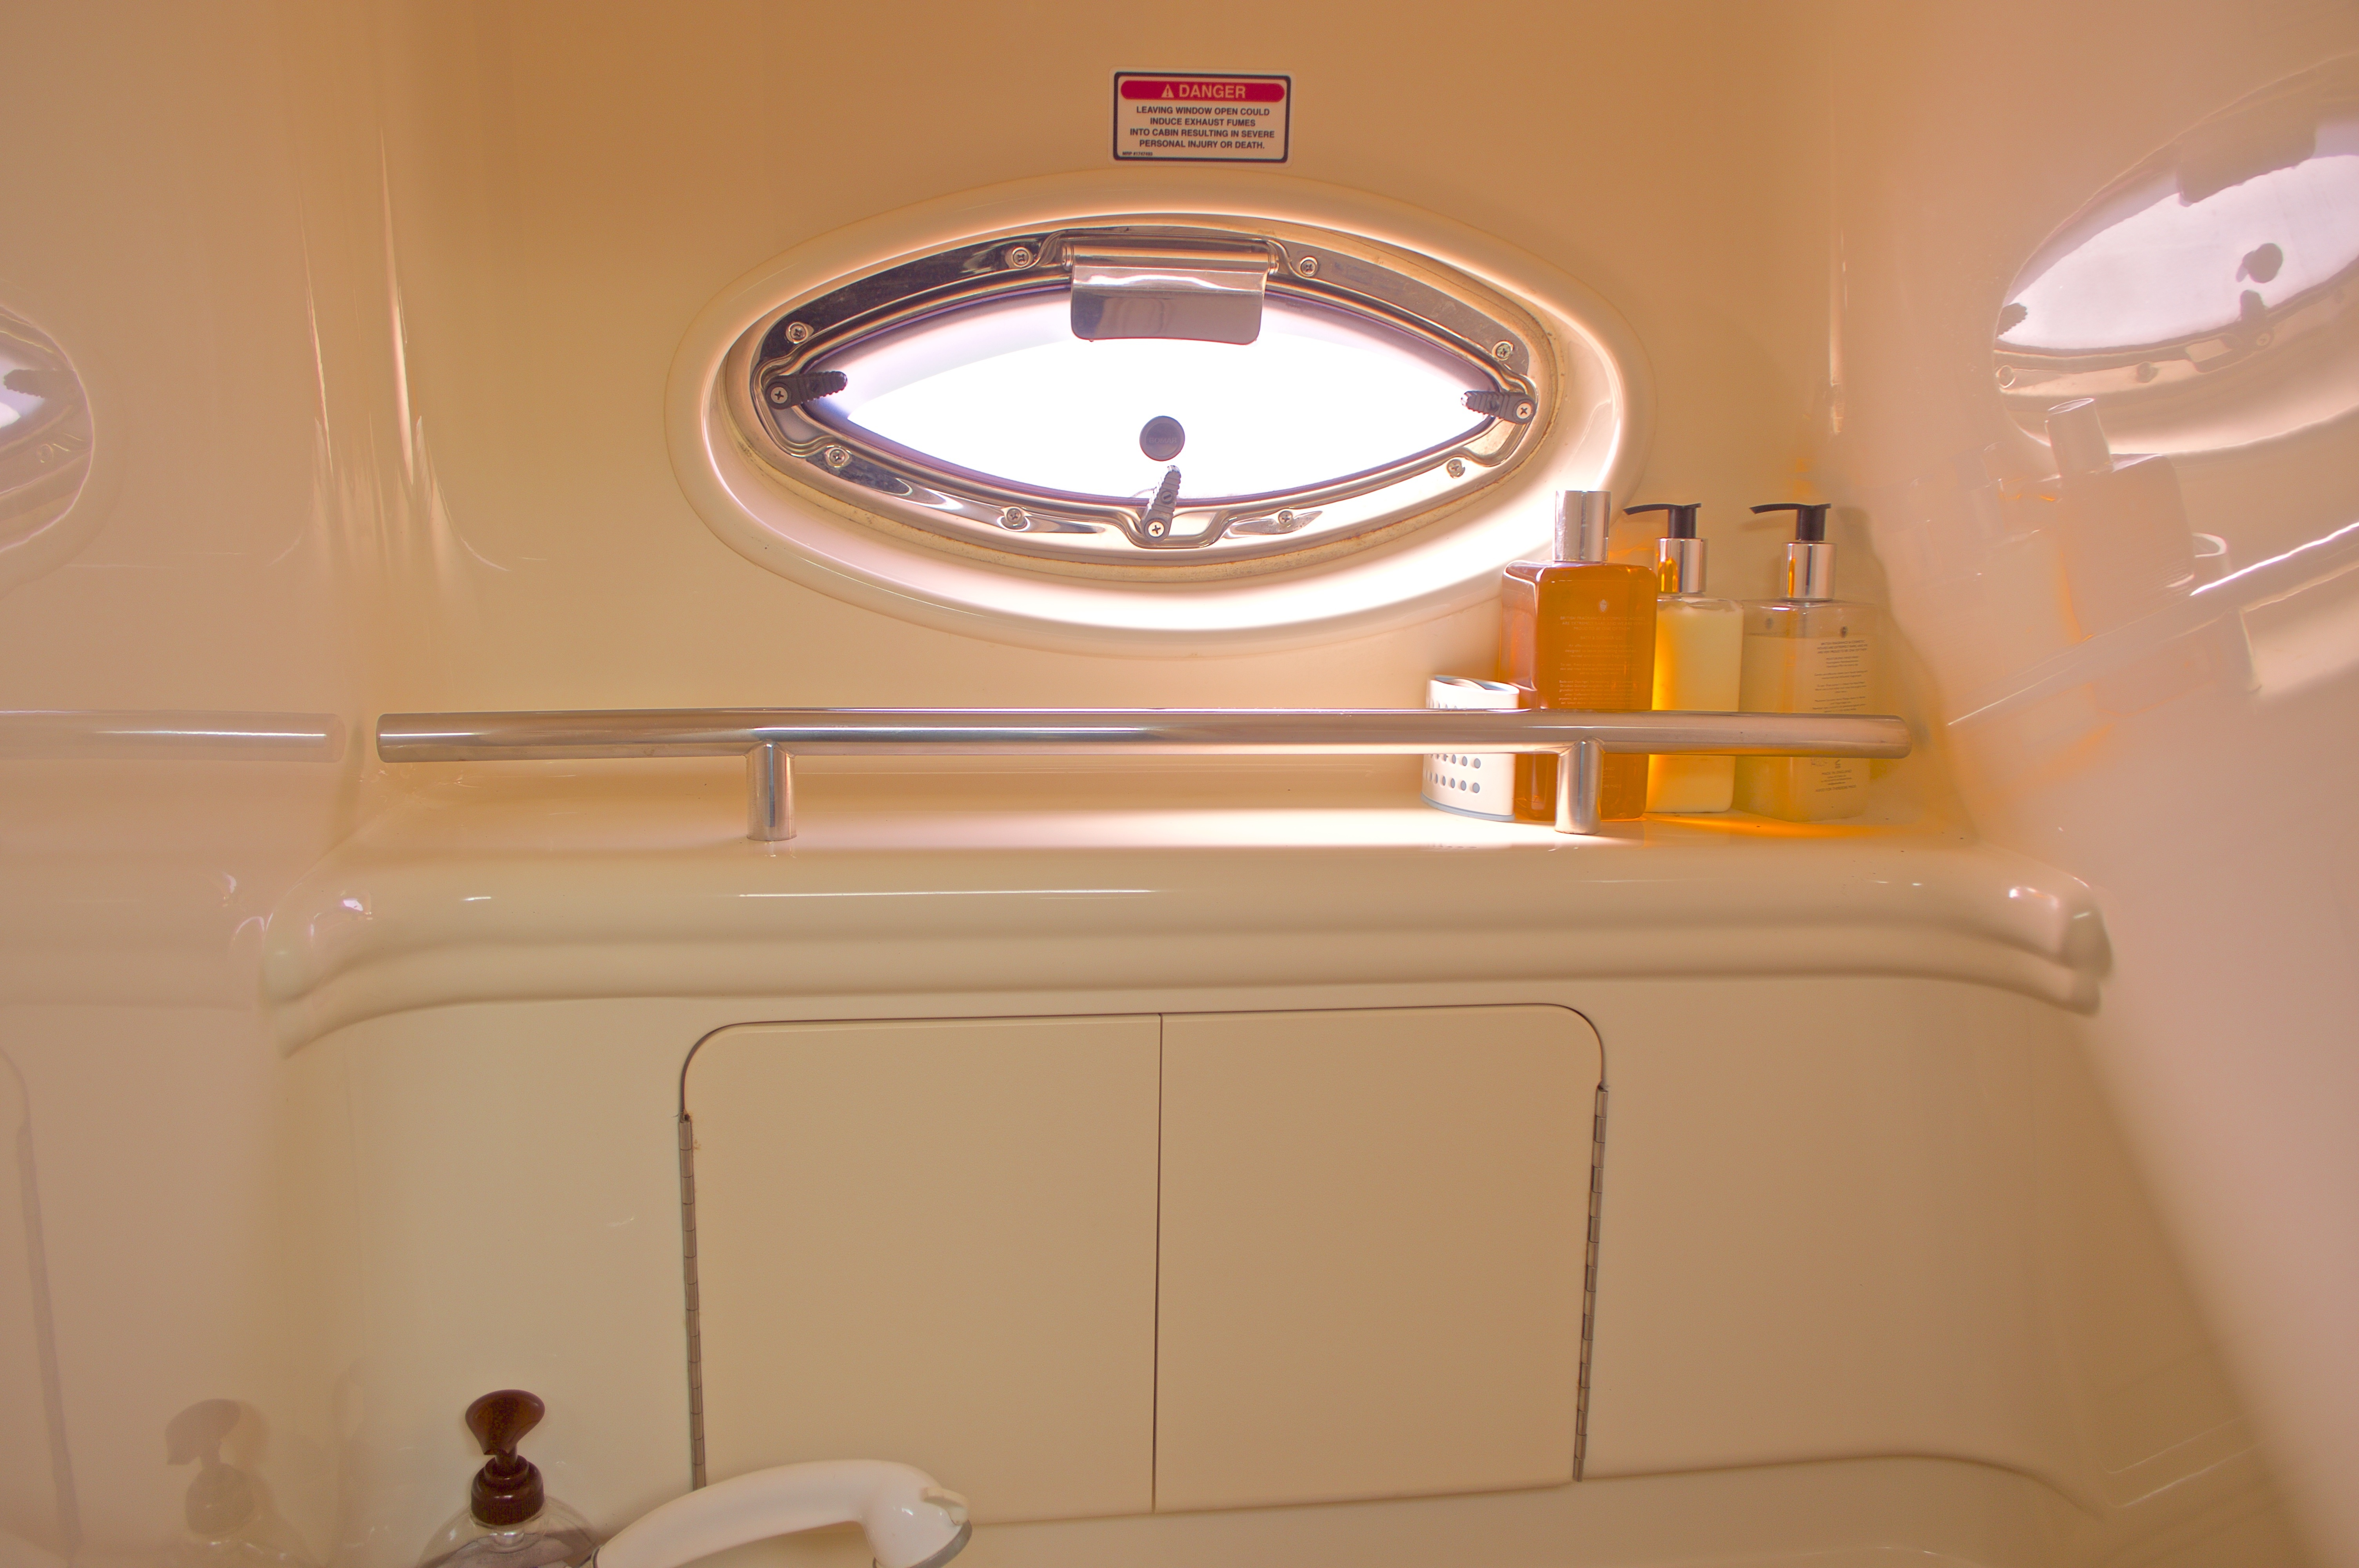 Thumbnail 61 for Used 2005 Sea Ray 280 Sundancer boat for sale in West Palm Beach, FL